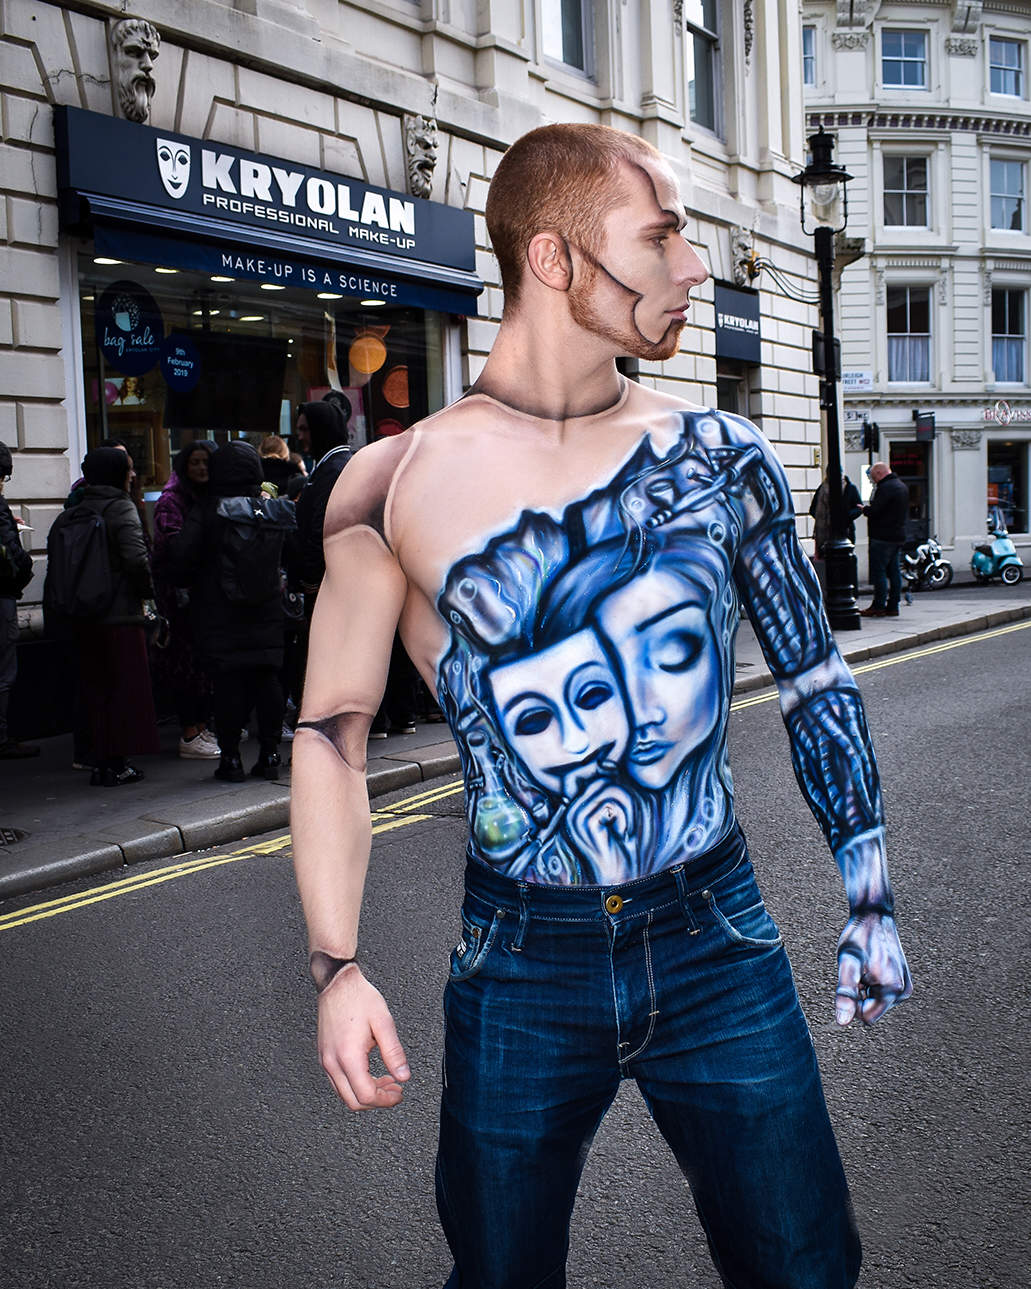 Kryolan Bag Sale 2019 - Body paint Window Display